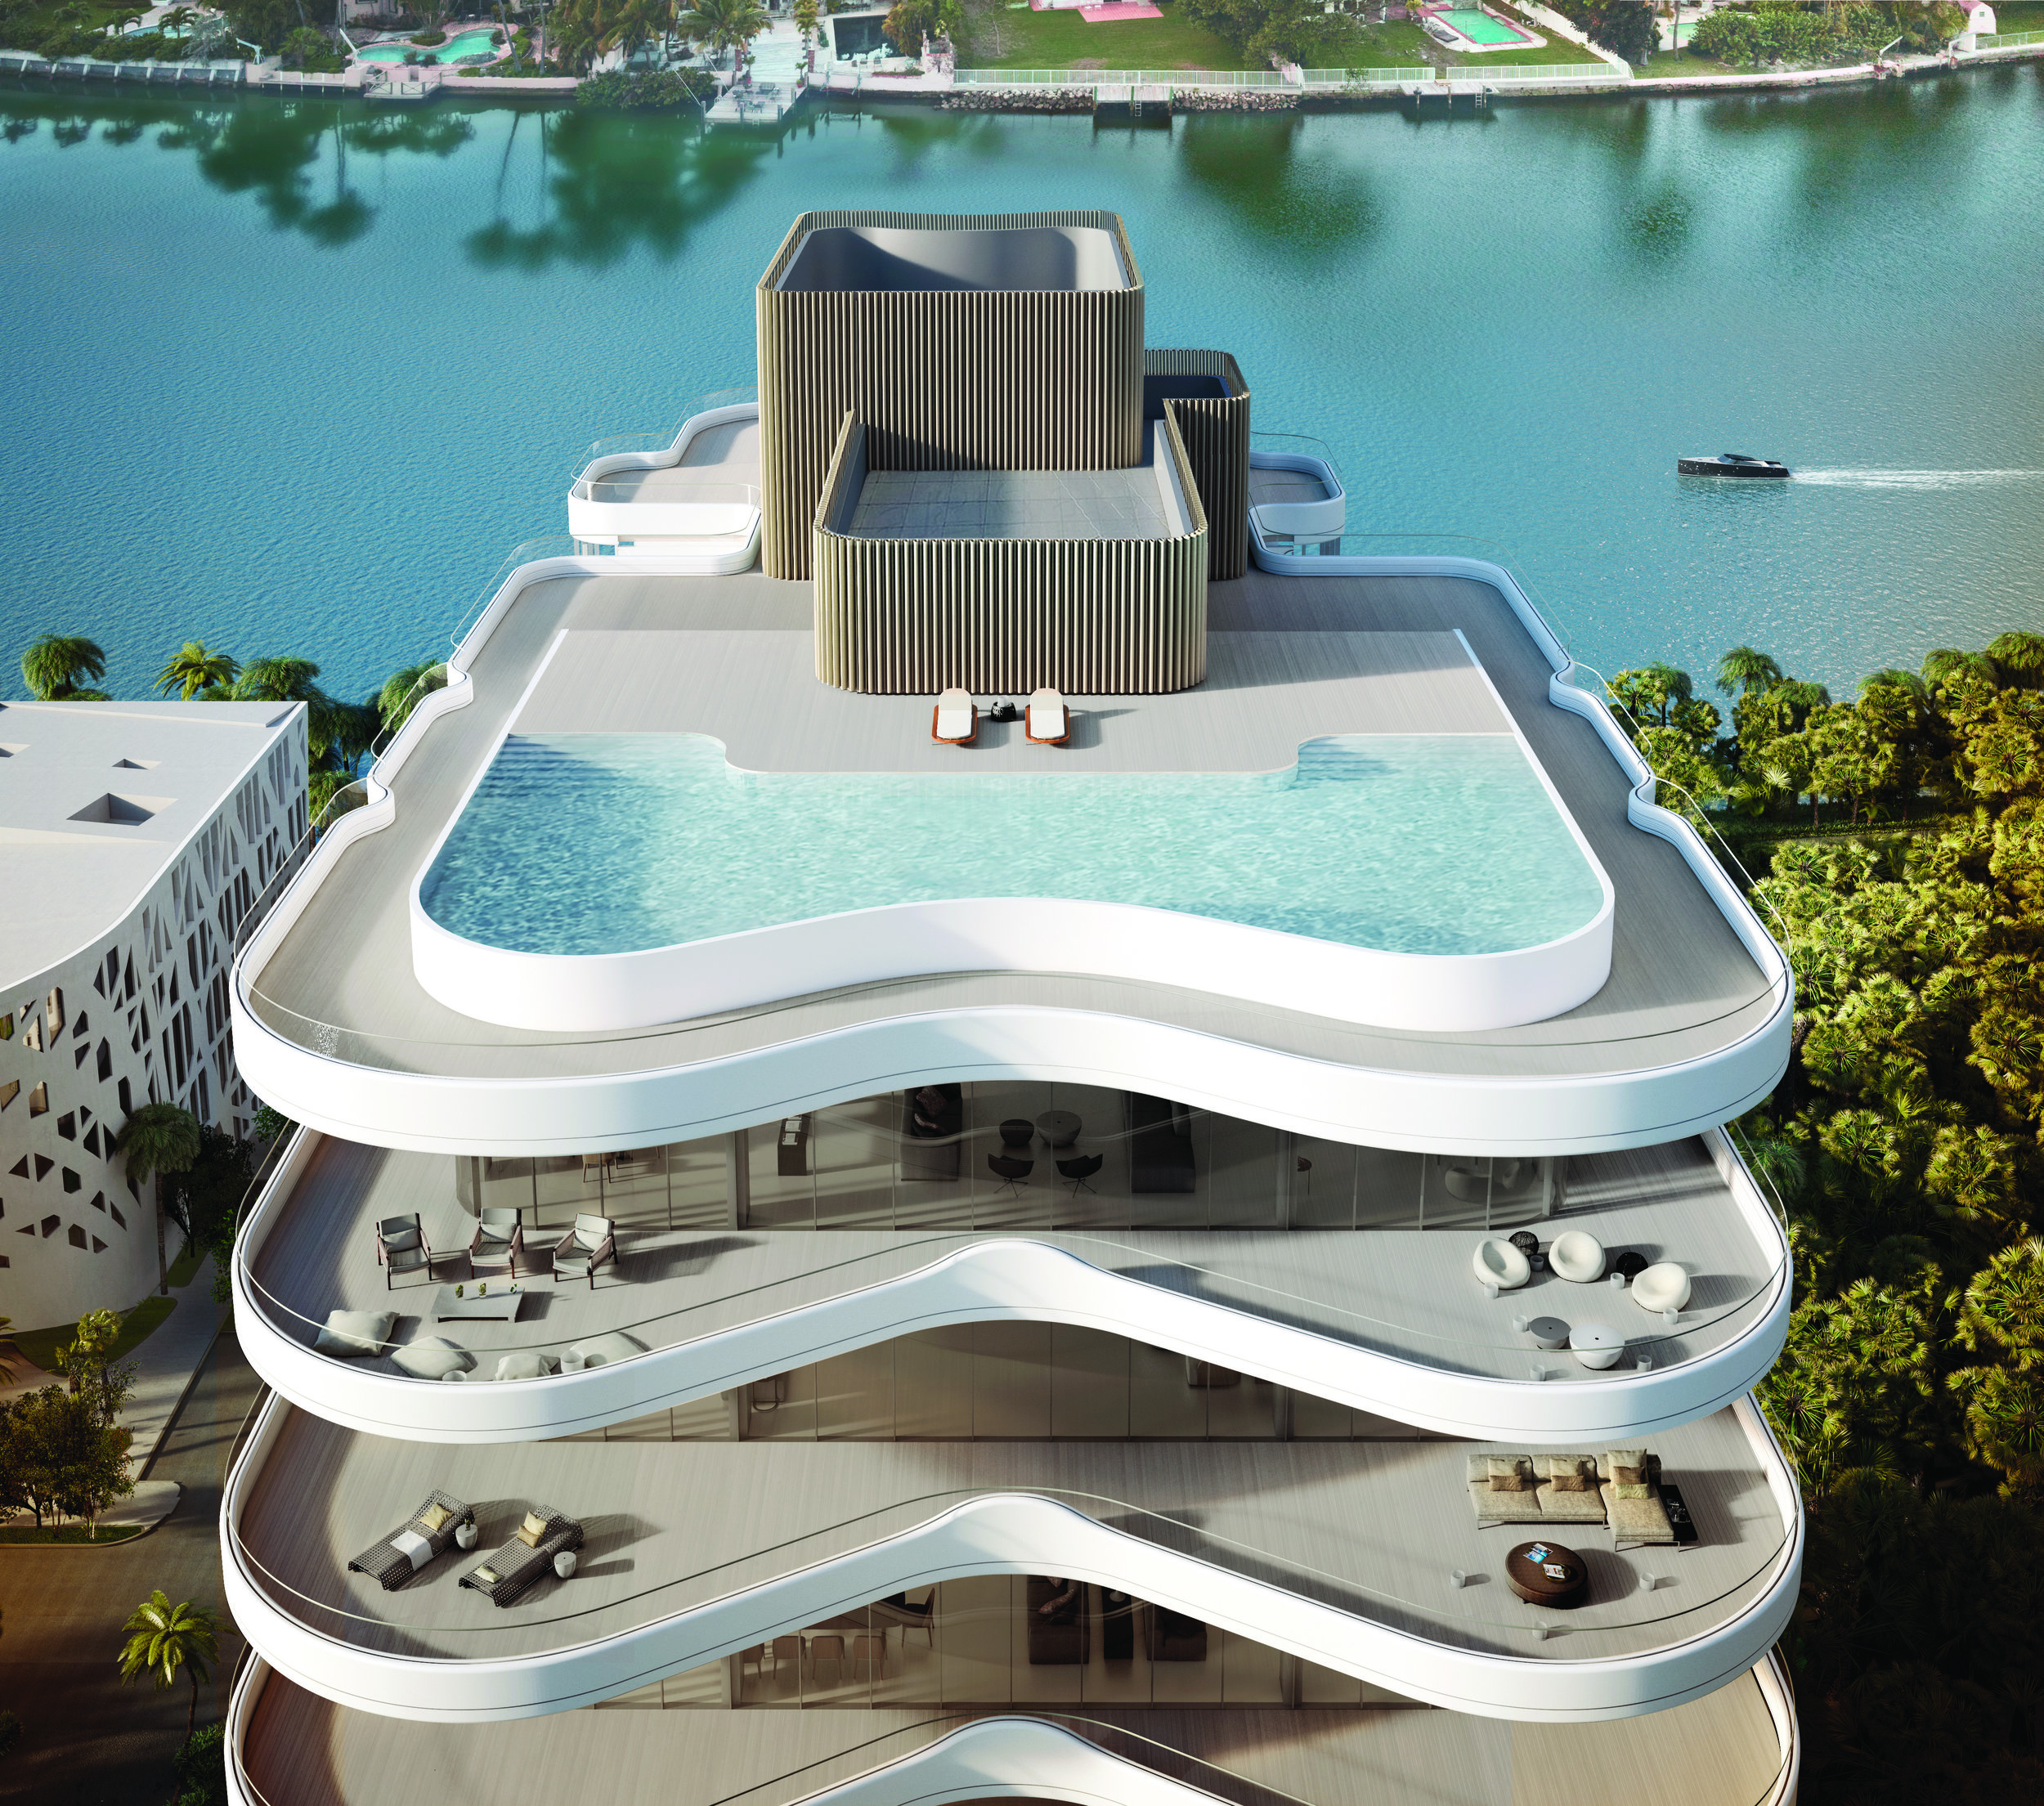 Faena Mar re-establishes the symmetrical purity of the historic Versailles Hotel